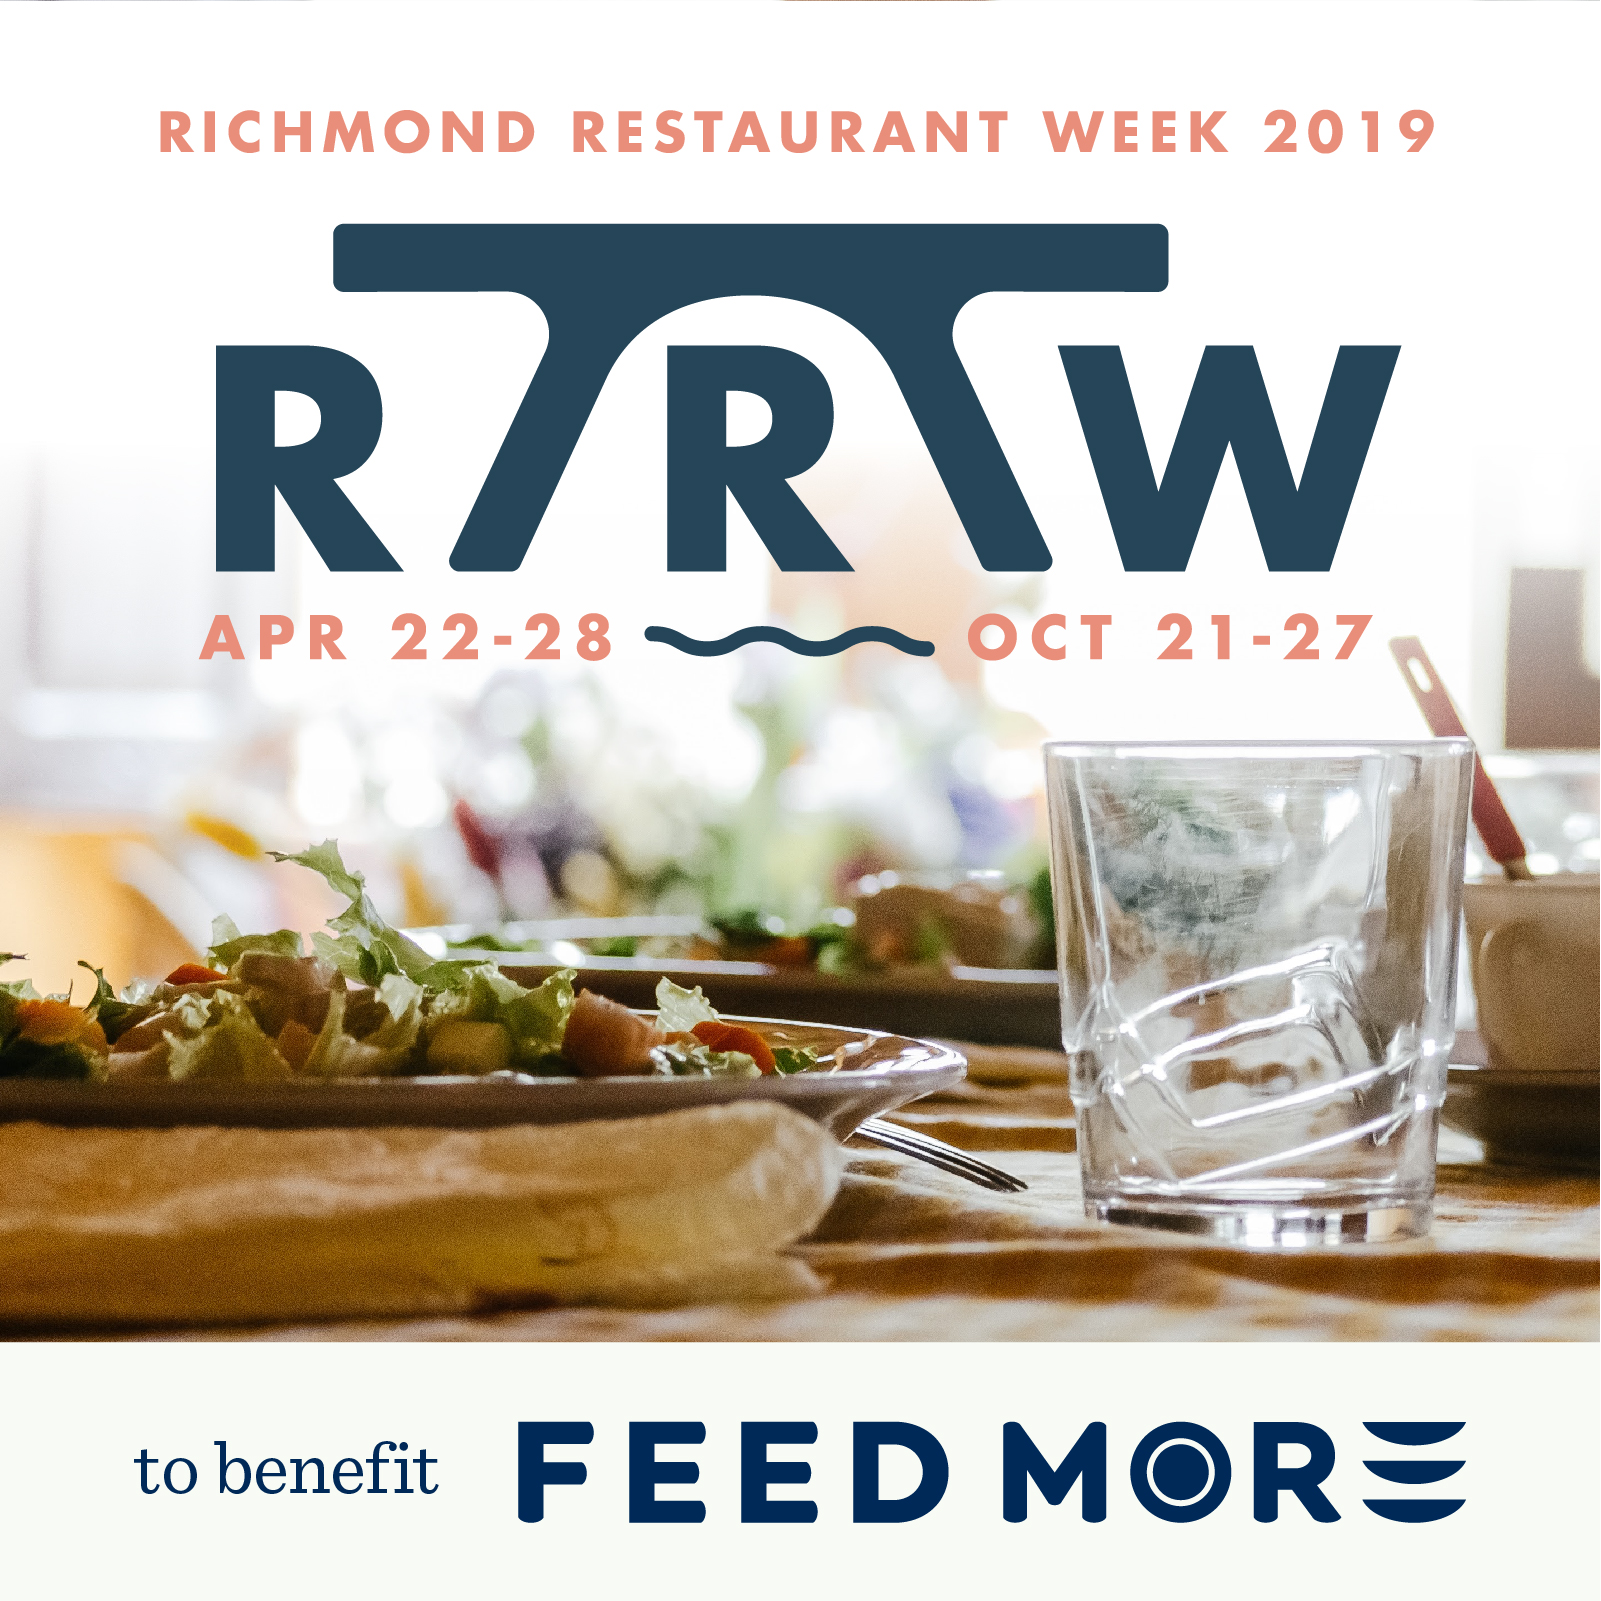 Richmond Restaurant Week 2019